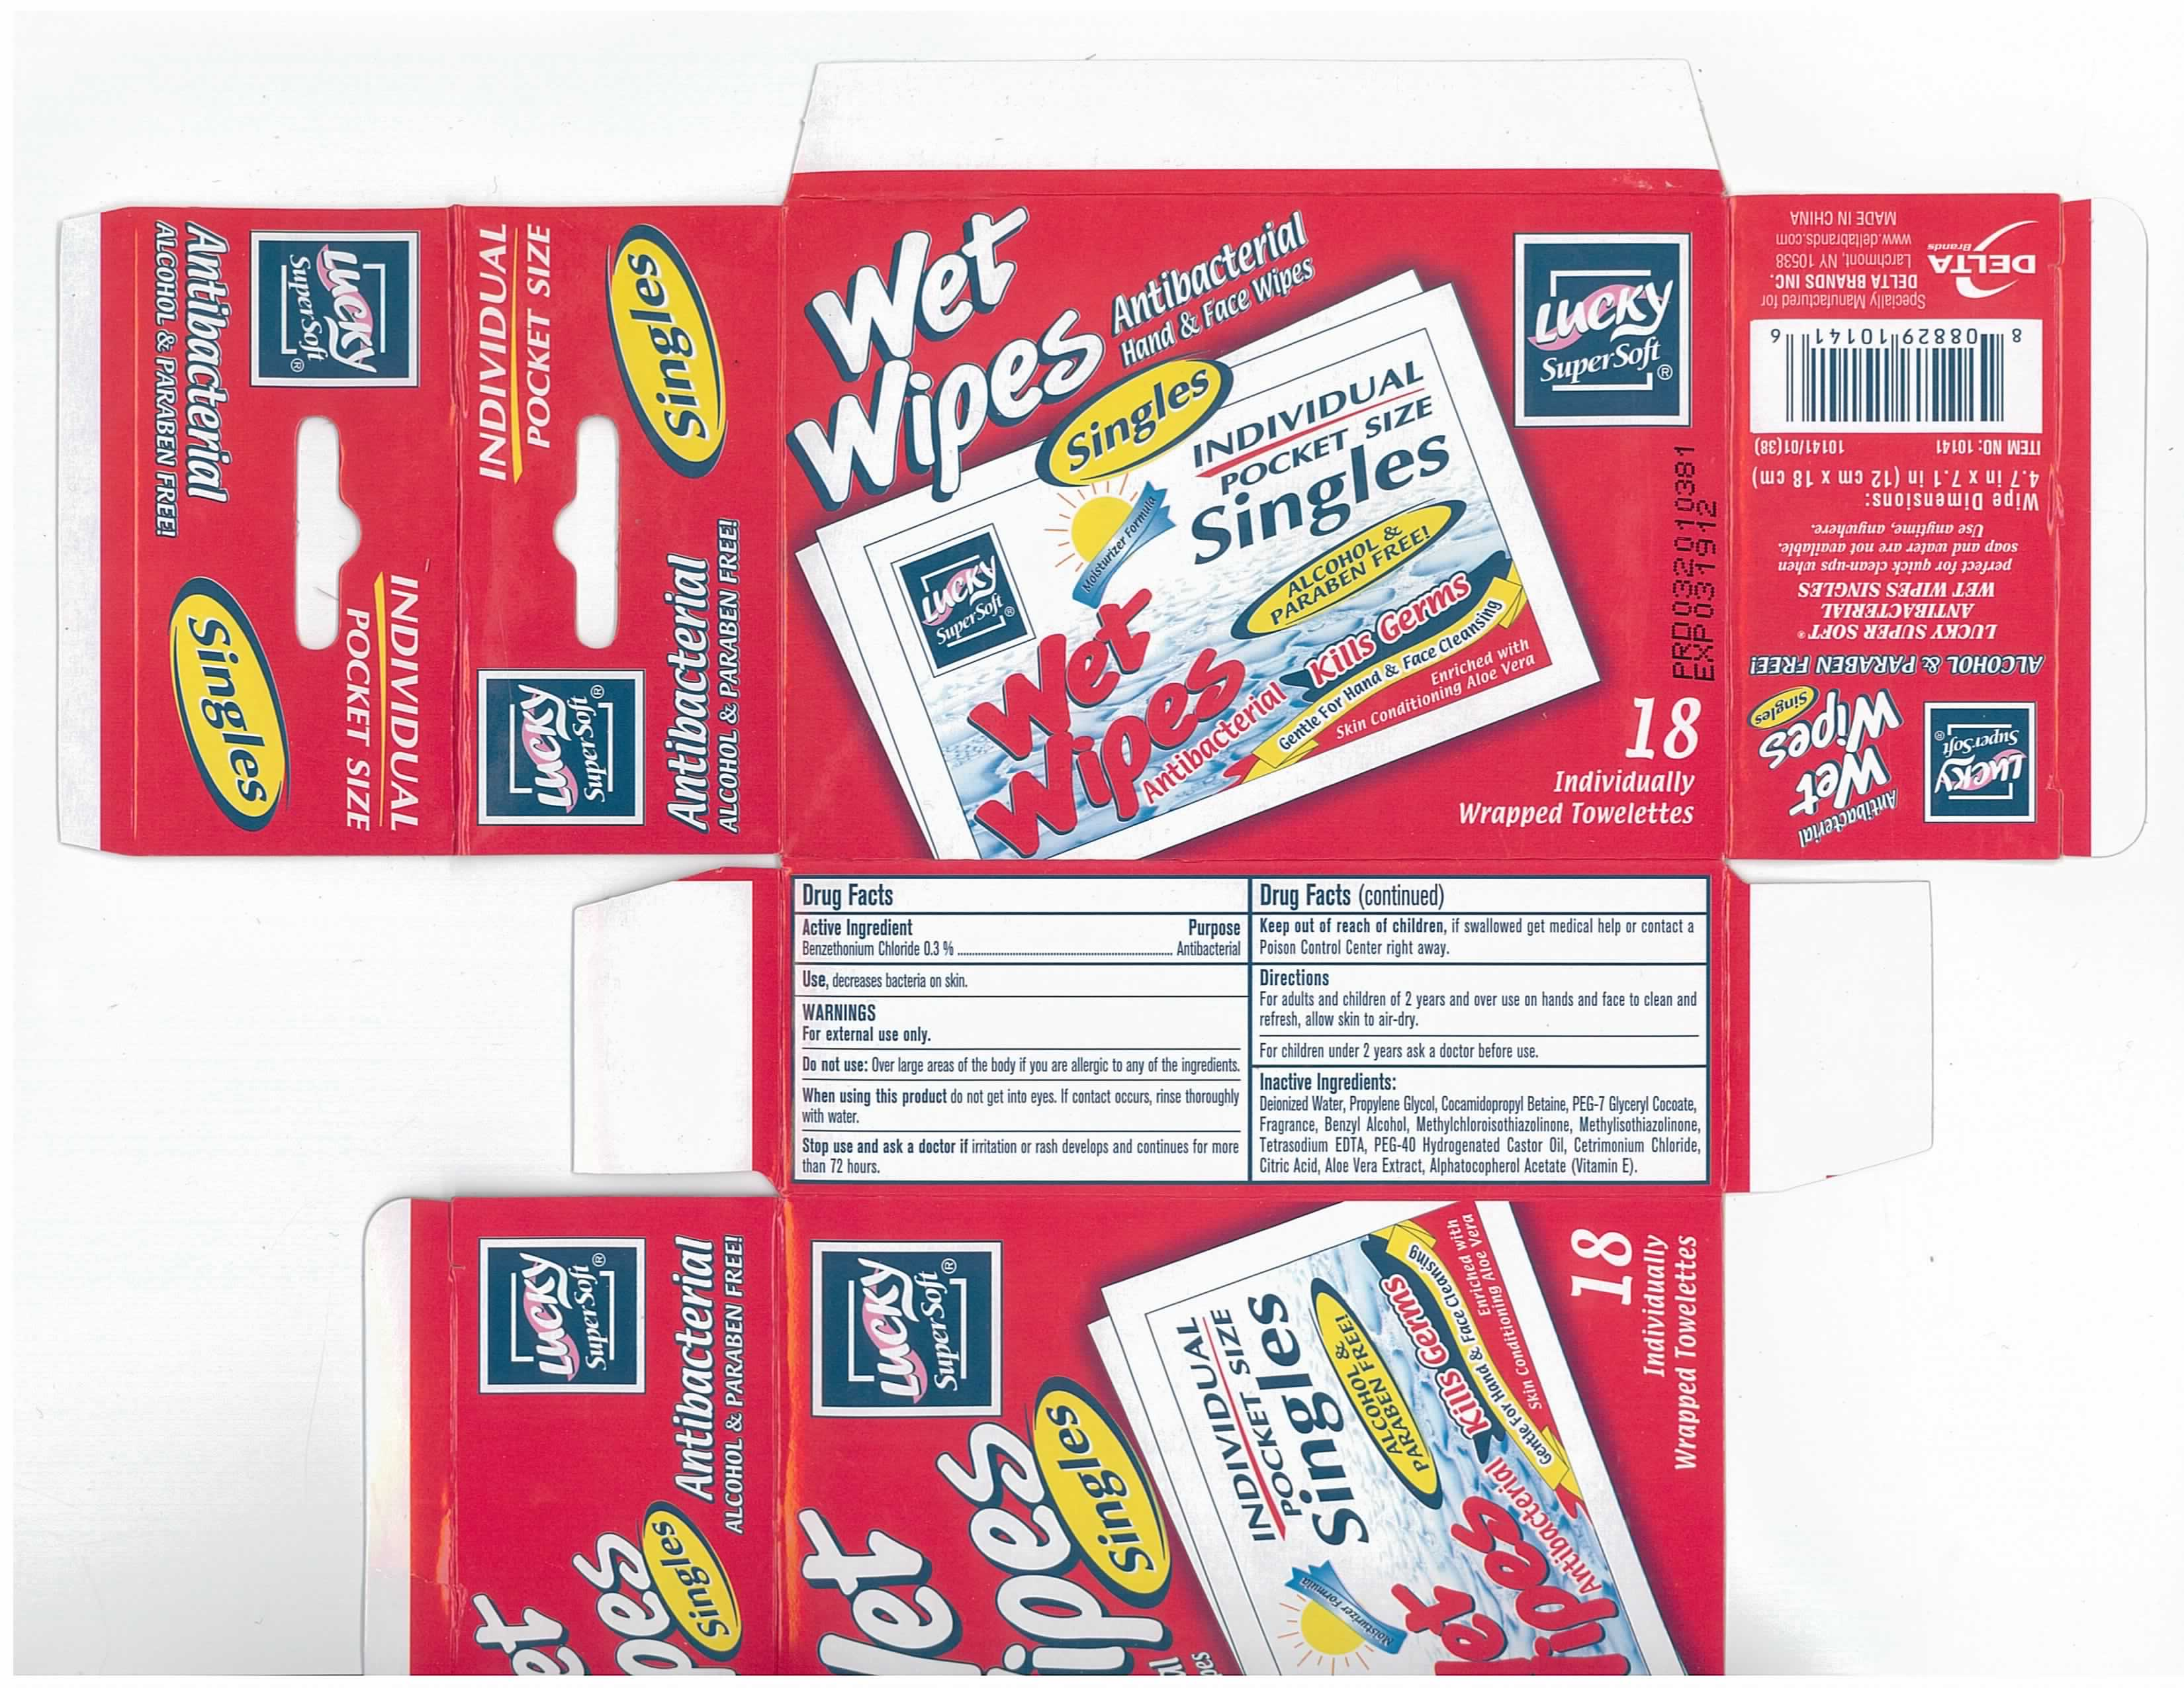 Wet Wipes (Benzethonium Chloride) Swab [Delta Brands, Inc]